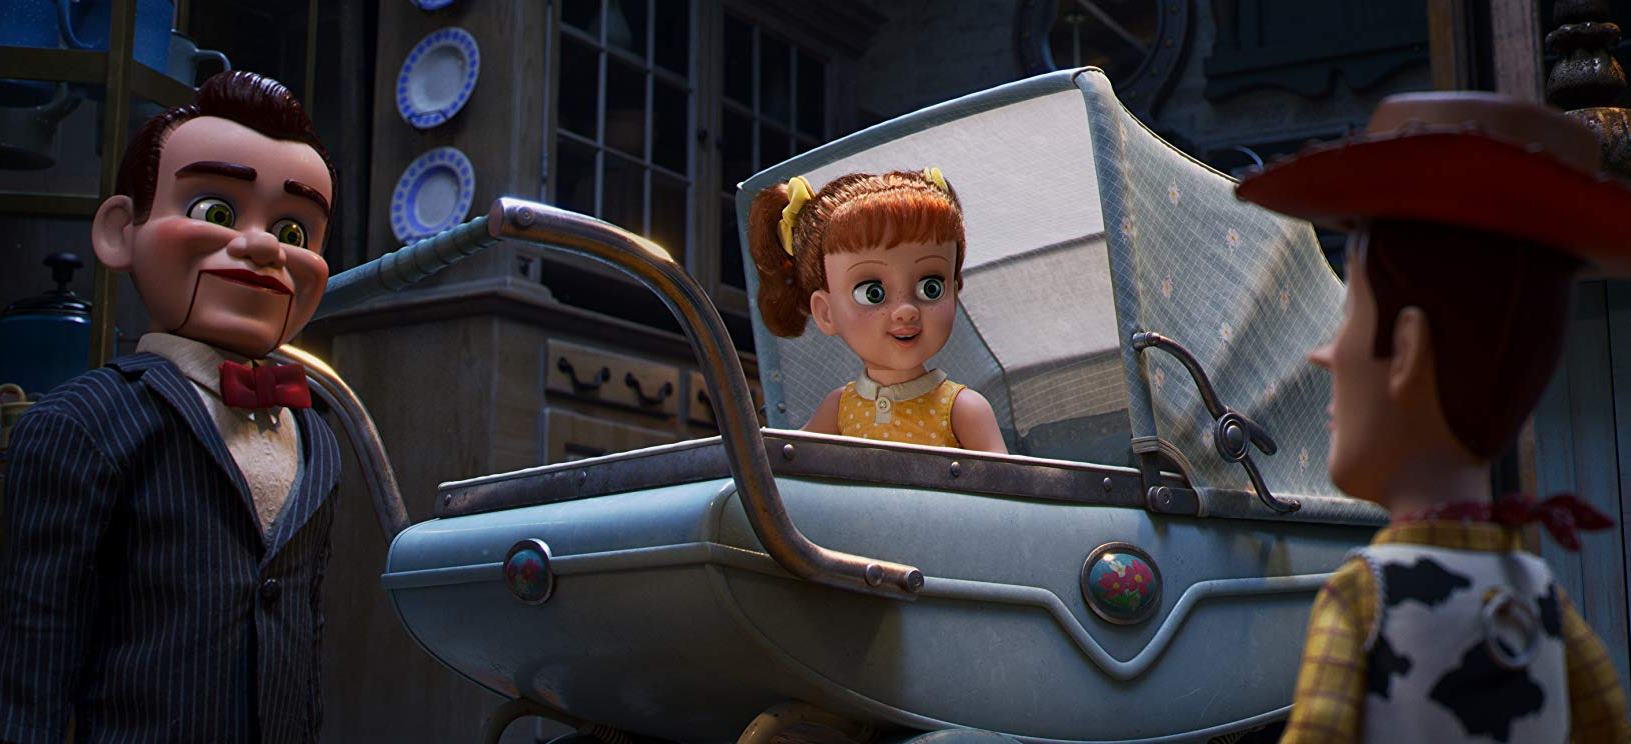 Woody (voiced by Tom Hanks) meets Gabby Gabby (voiced by Christina Hendricks) and one of the ventriloquist's dummies (voiced by Steve Purcell) in Toy Story 4 (2019)